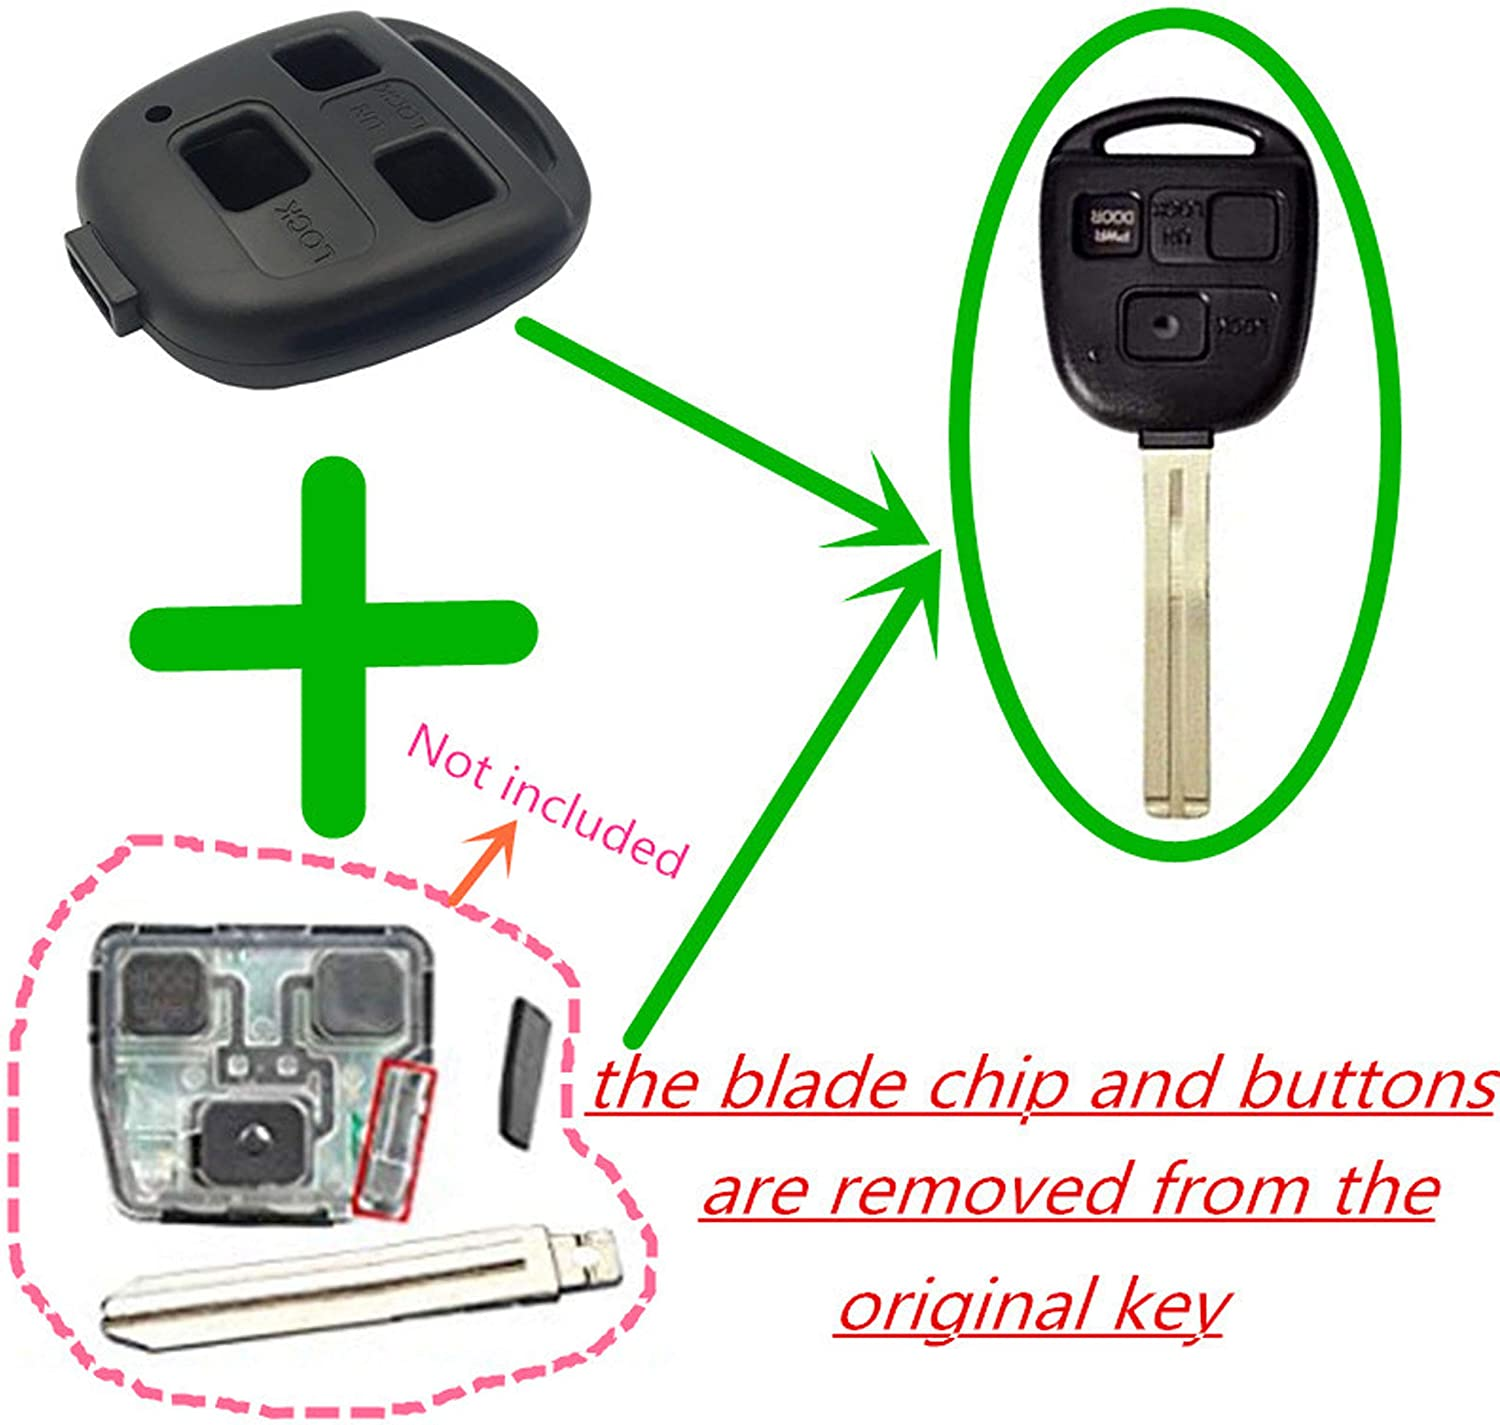 HYQ12BBT, HYQ1512V, 1511A-12BBT BINOWEN Key Shell with Screwdriver Key Fob Case Replacement for Lexus GS300 GS400 GS430 GX470 IS300 LS400 LS430 LX470 RX300 RX330 RX350 RX400h RX450h SC430